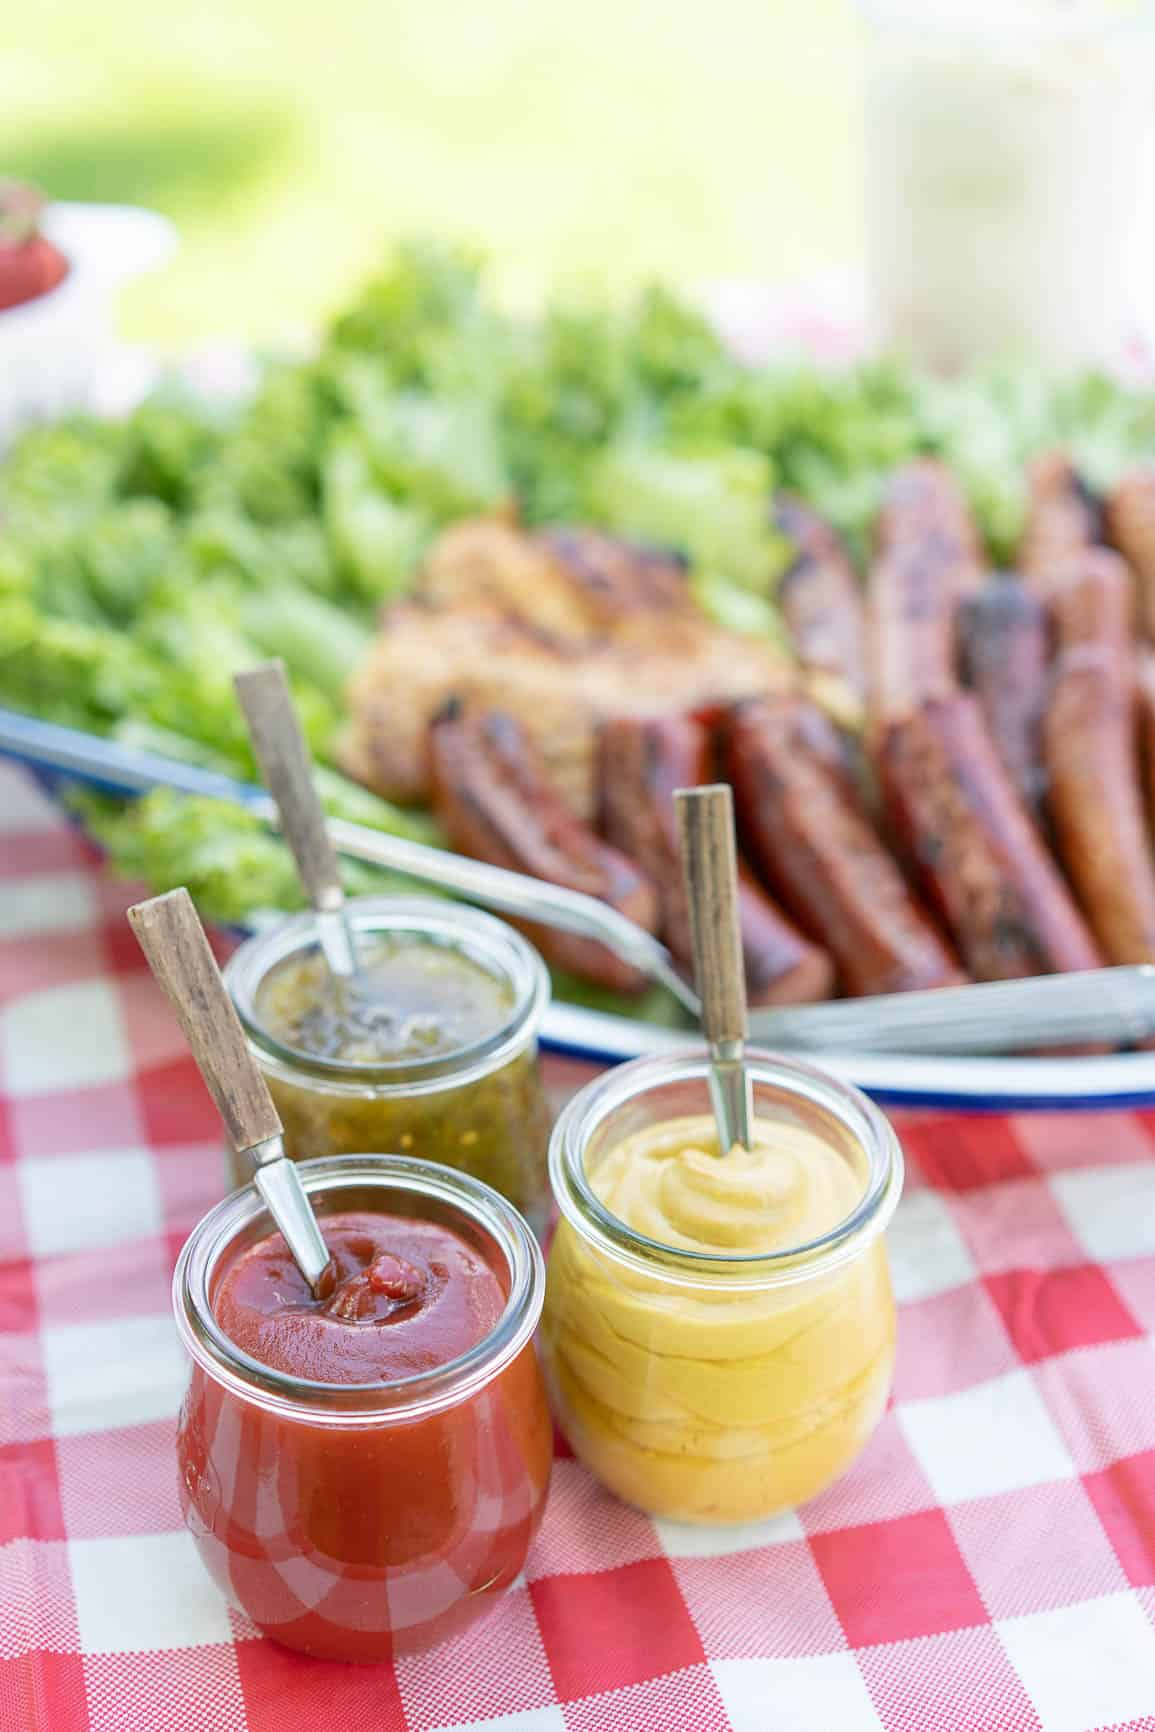 ketchup, mustard and relish in weck jars with spoons on a picnic table